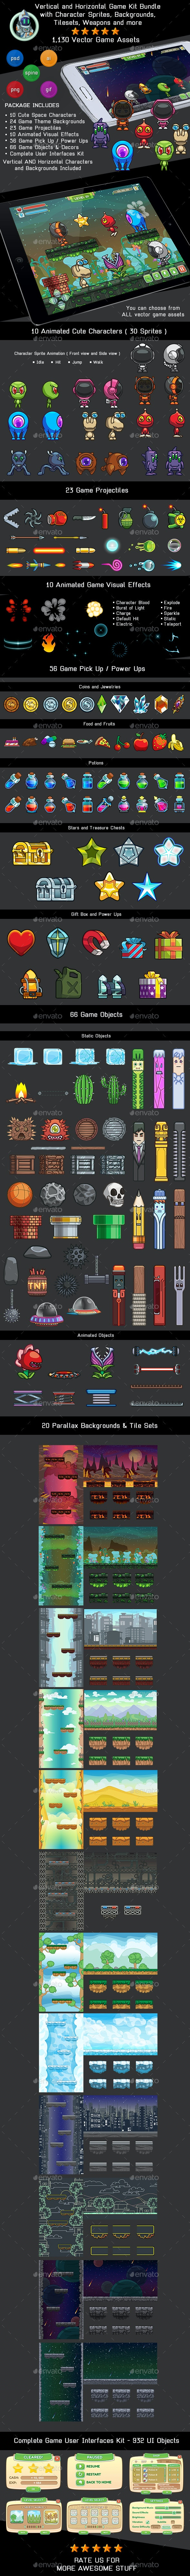 Space Game Kit - Sprites, Backgrounds, Tilesets and GUI - Game Kits Game Assets